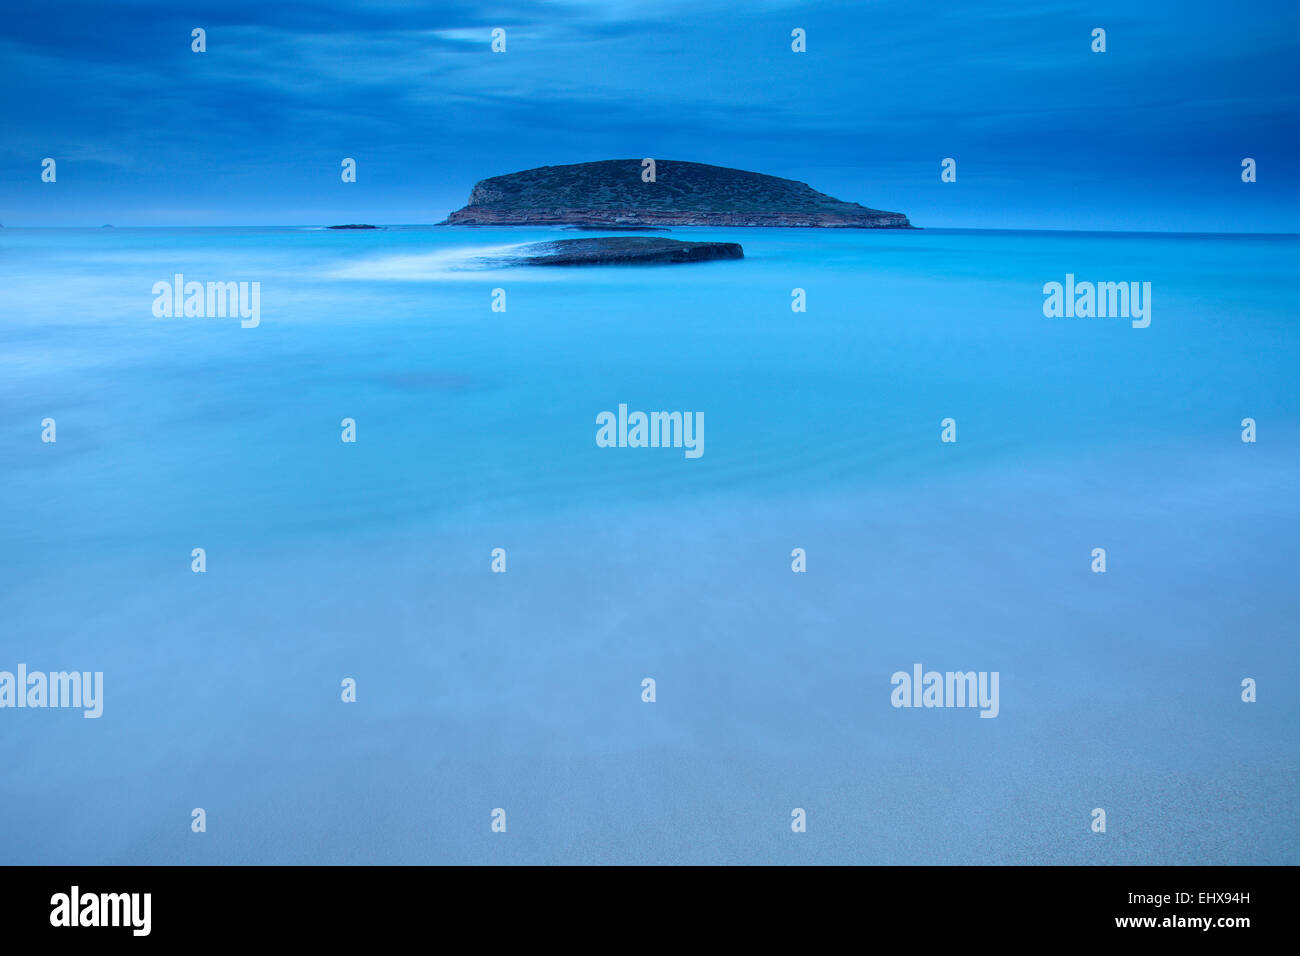 Spain, Ibiza, Cala Comte at blue hour - Stock Image